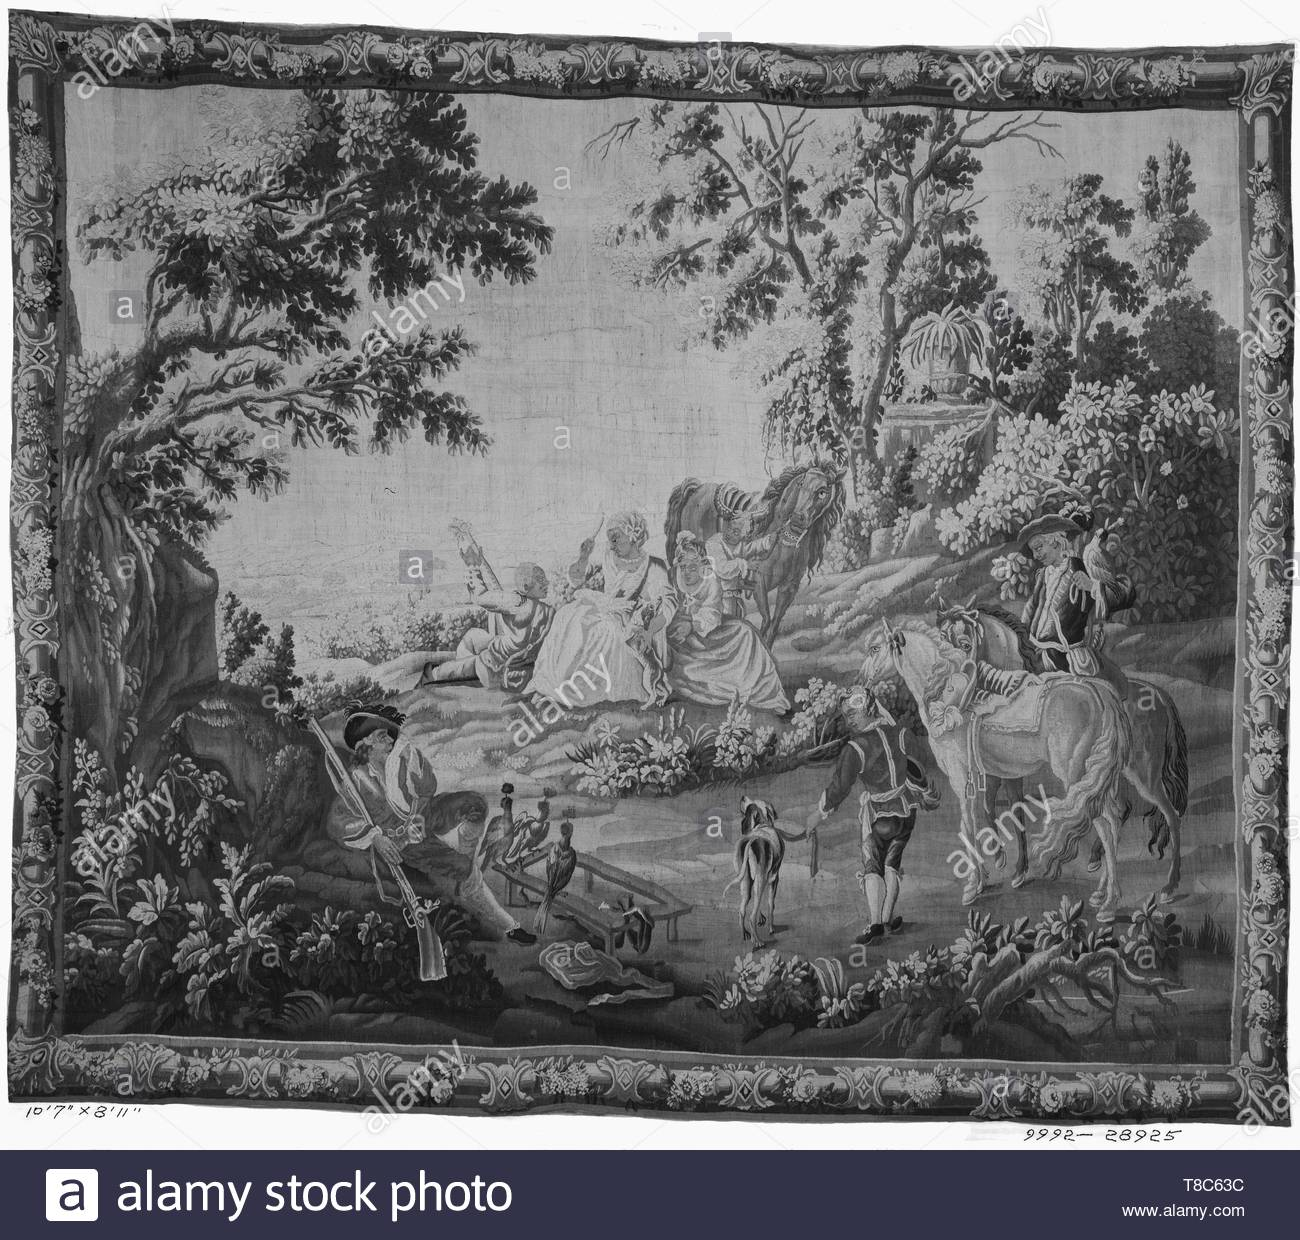 Falens, Carel van (Flemish, 1683-1733) (designed after) [painter] br Le Bas, Jacques-Philippe (French, 1707-1783) (designed after) [printmaker] br Roby, Lonard (French, act. 1770-1788) (workshop) [weaver]-Falconers - Stock Image